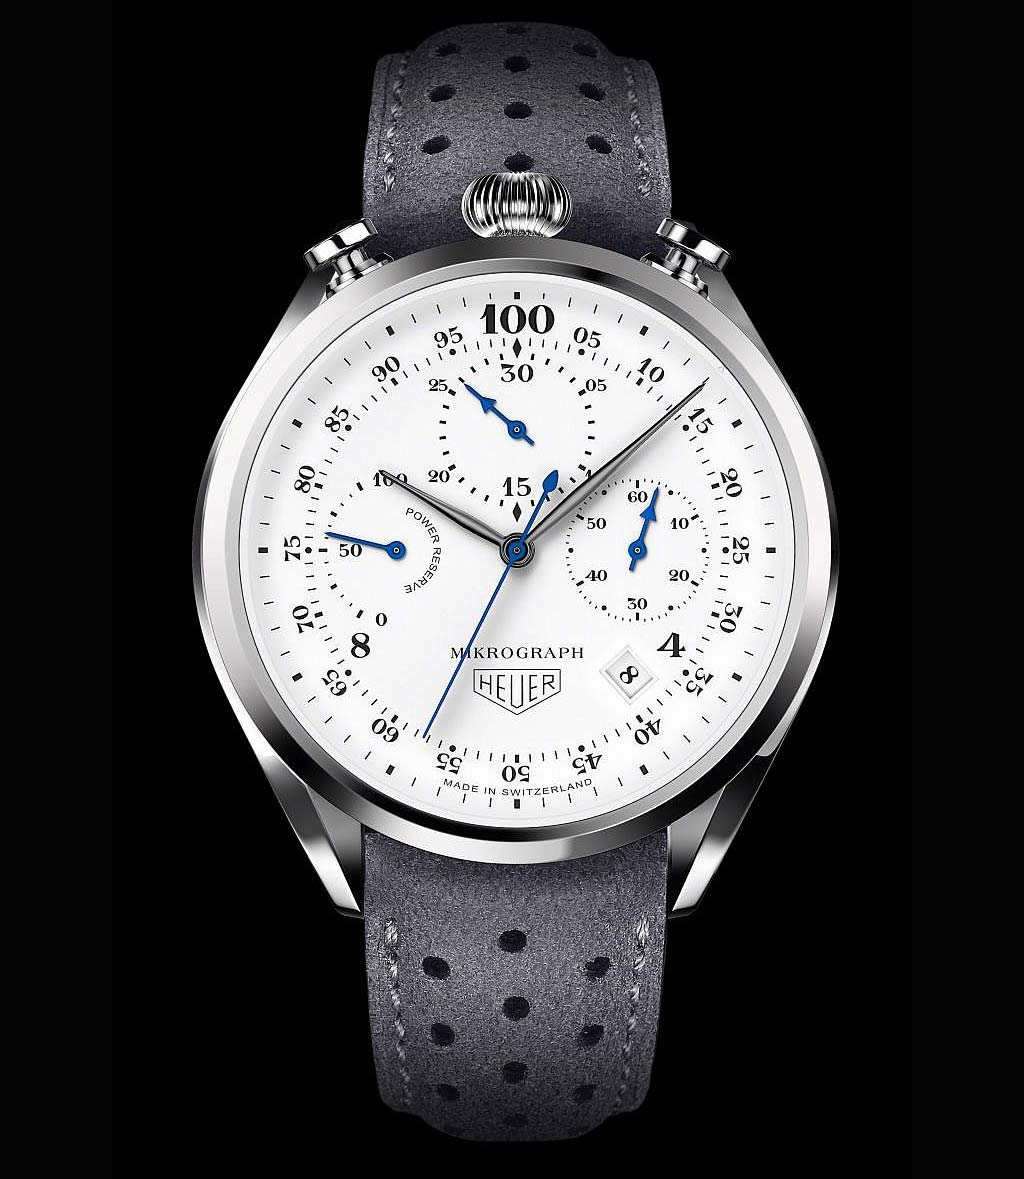 TAG Heur's new 2016 Mikrograph 100th Anniversary TAG-Heuer-2016-Heuer-Mikrograph-100th-Anniversary-002